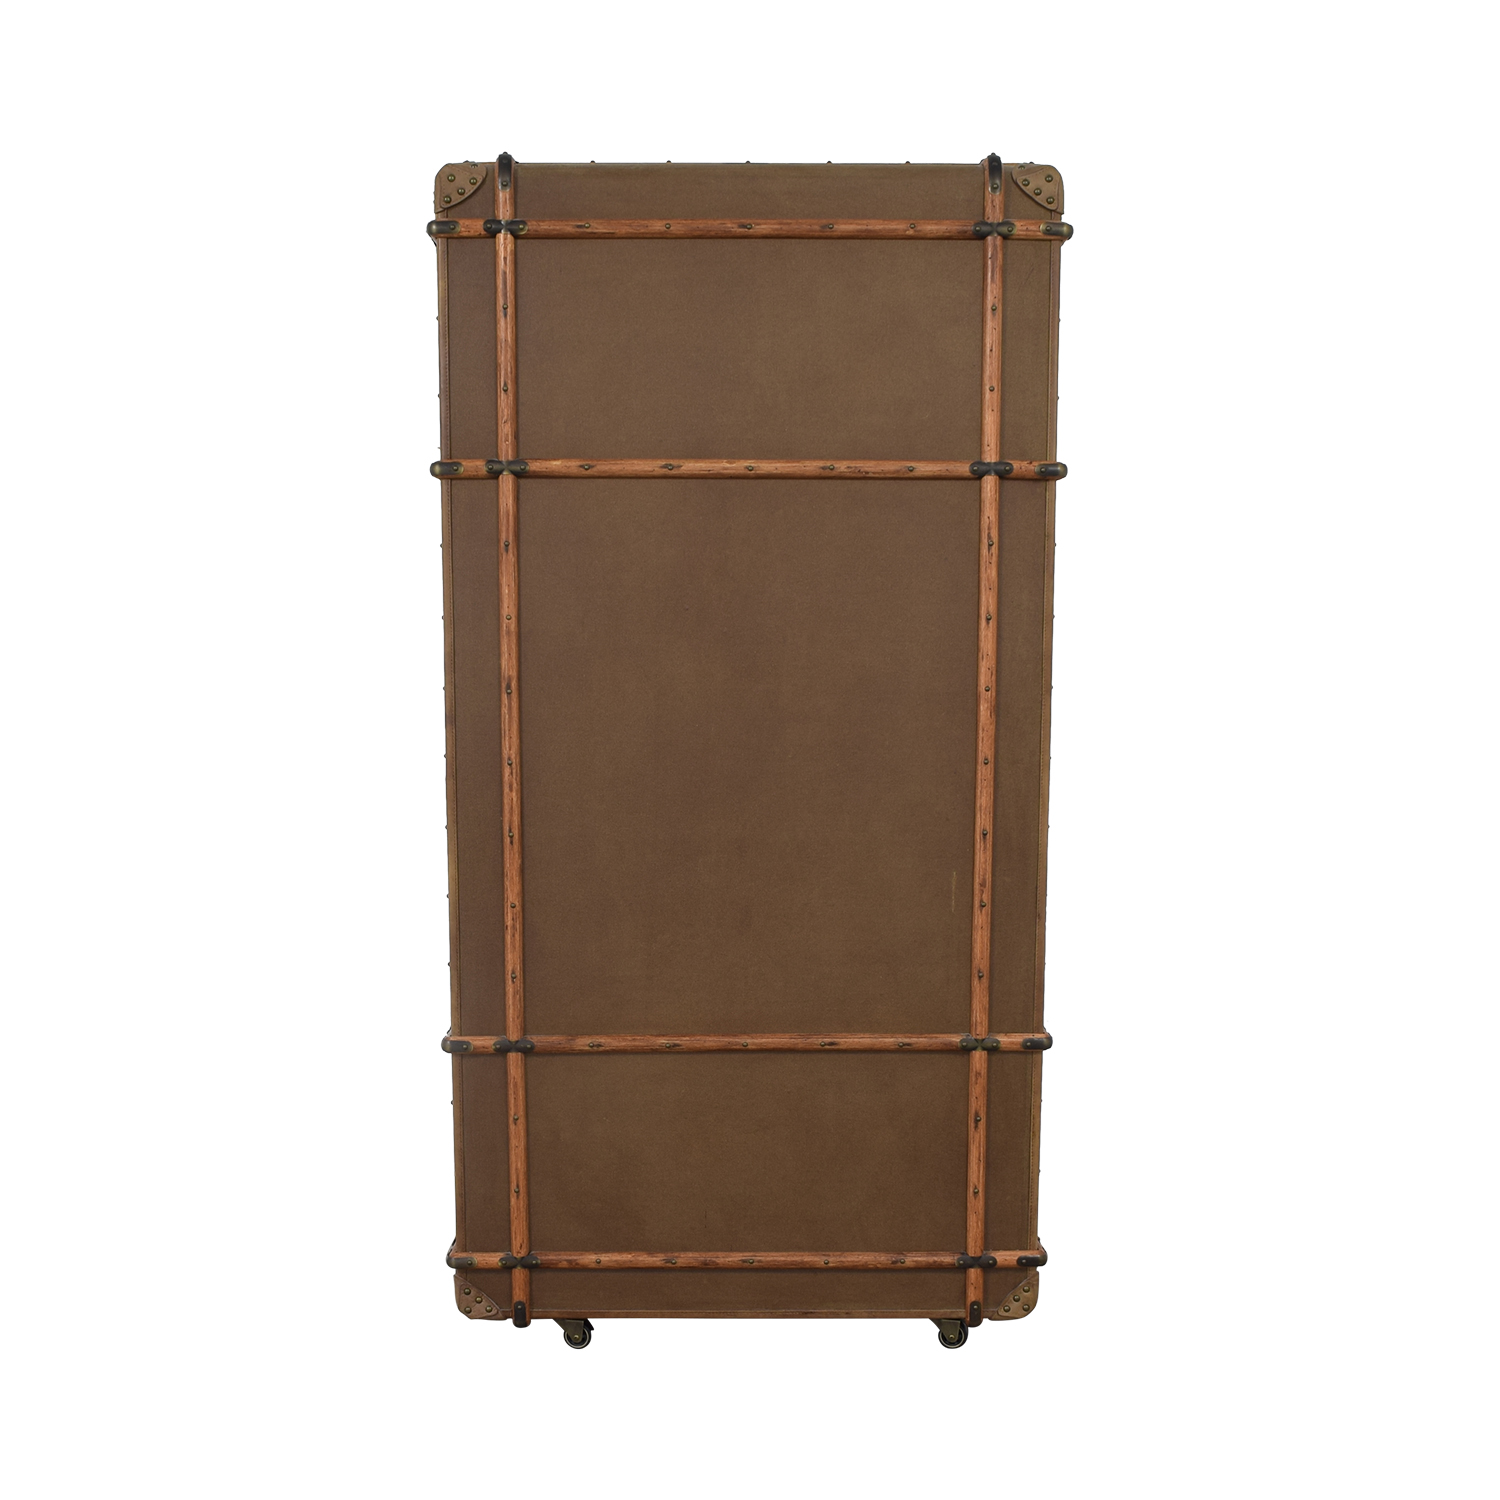 Restoration Hardware Restoration Hardware Richard's Trunk Secretary price